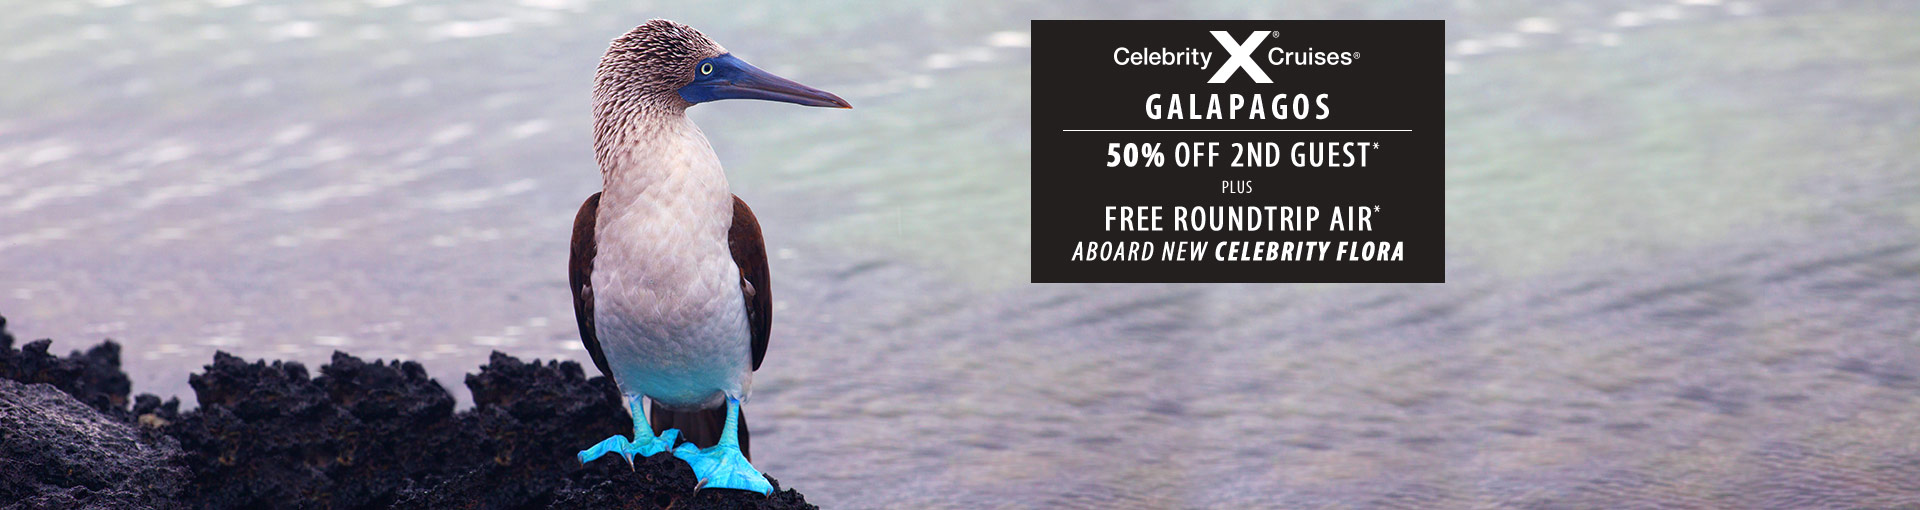 Celebrity Cruises: 50% Off 2nd Guest + Flights Included